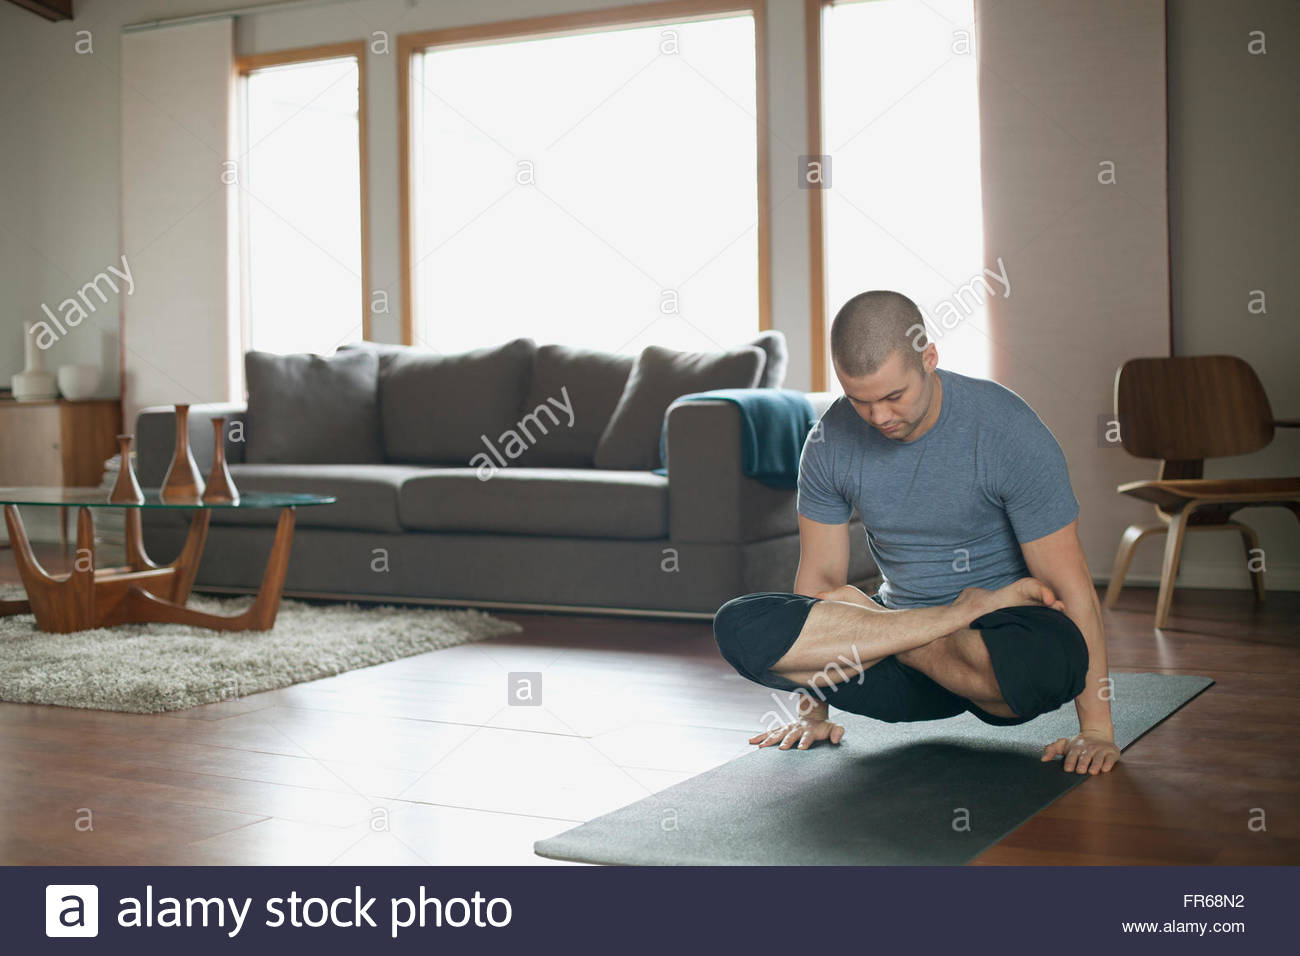 Man doing yoga pose à la maison Photo Stock